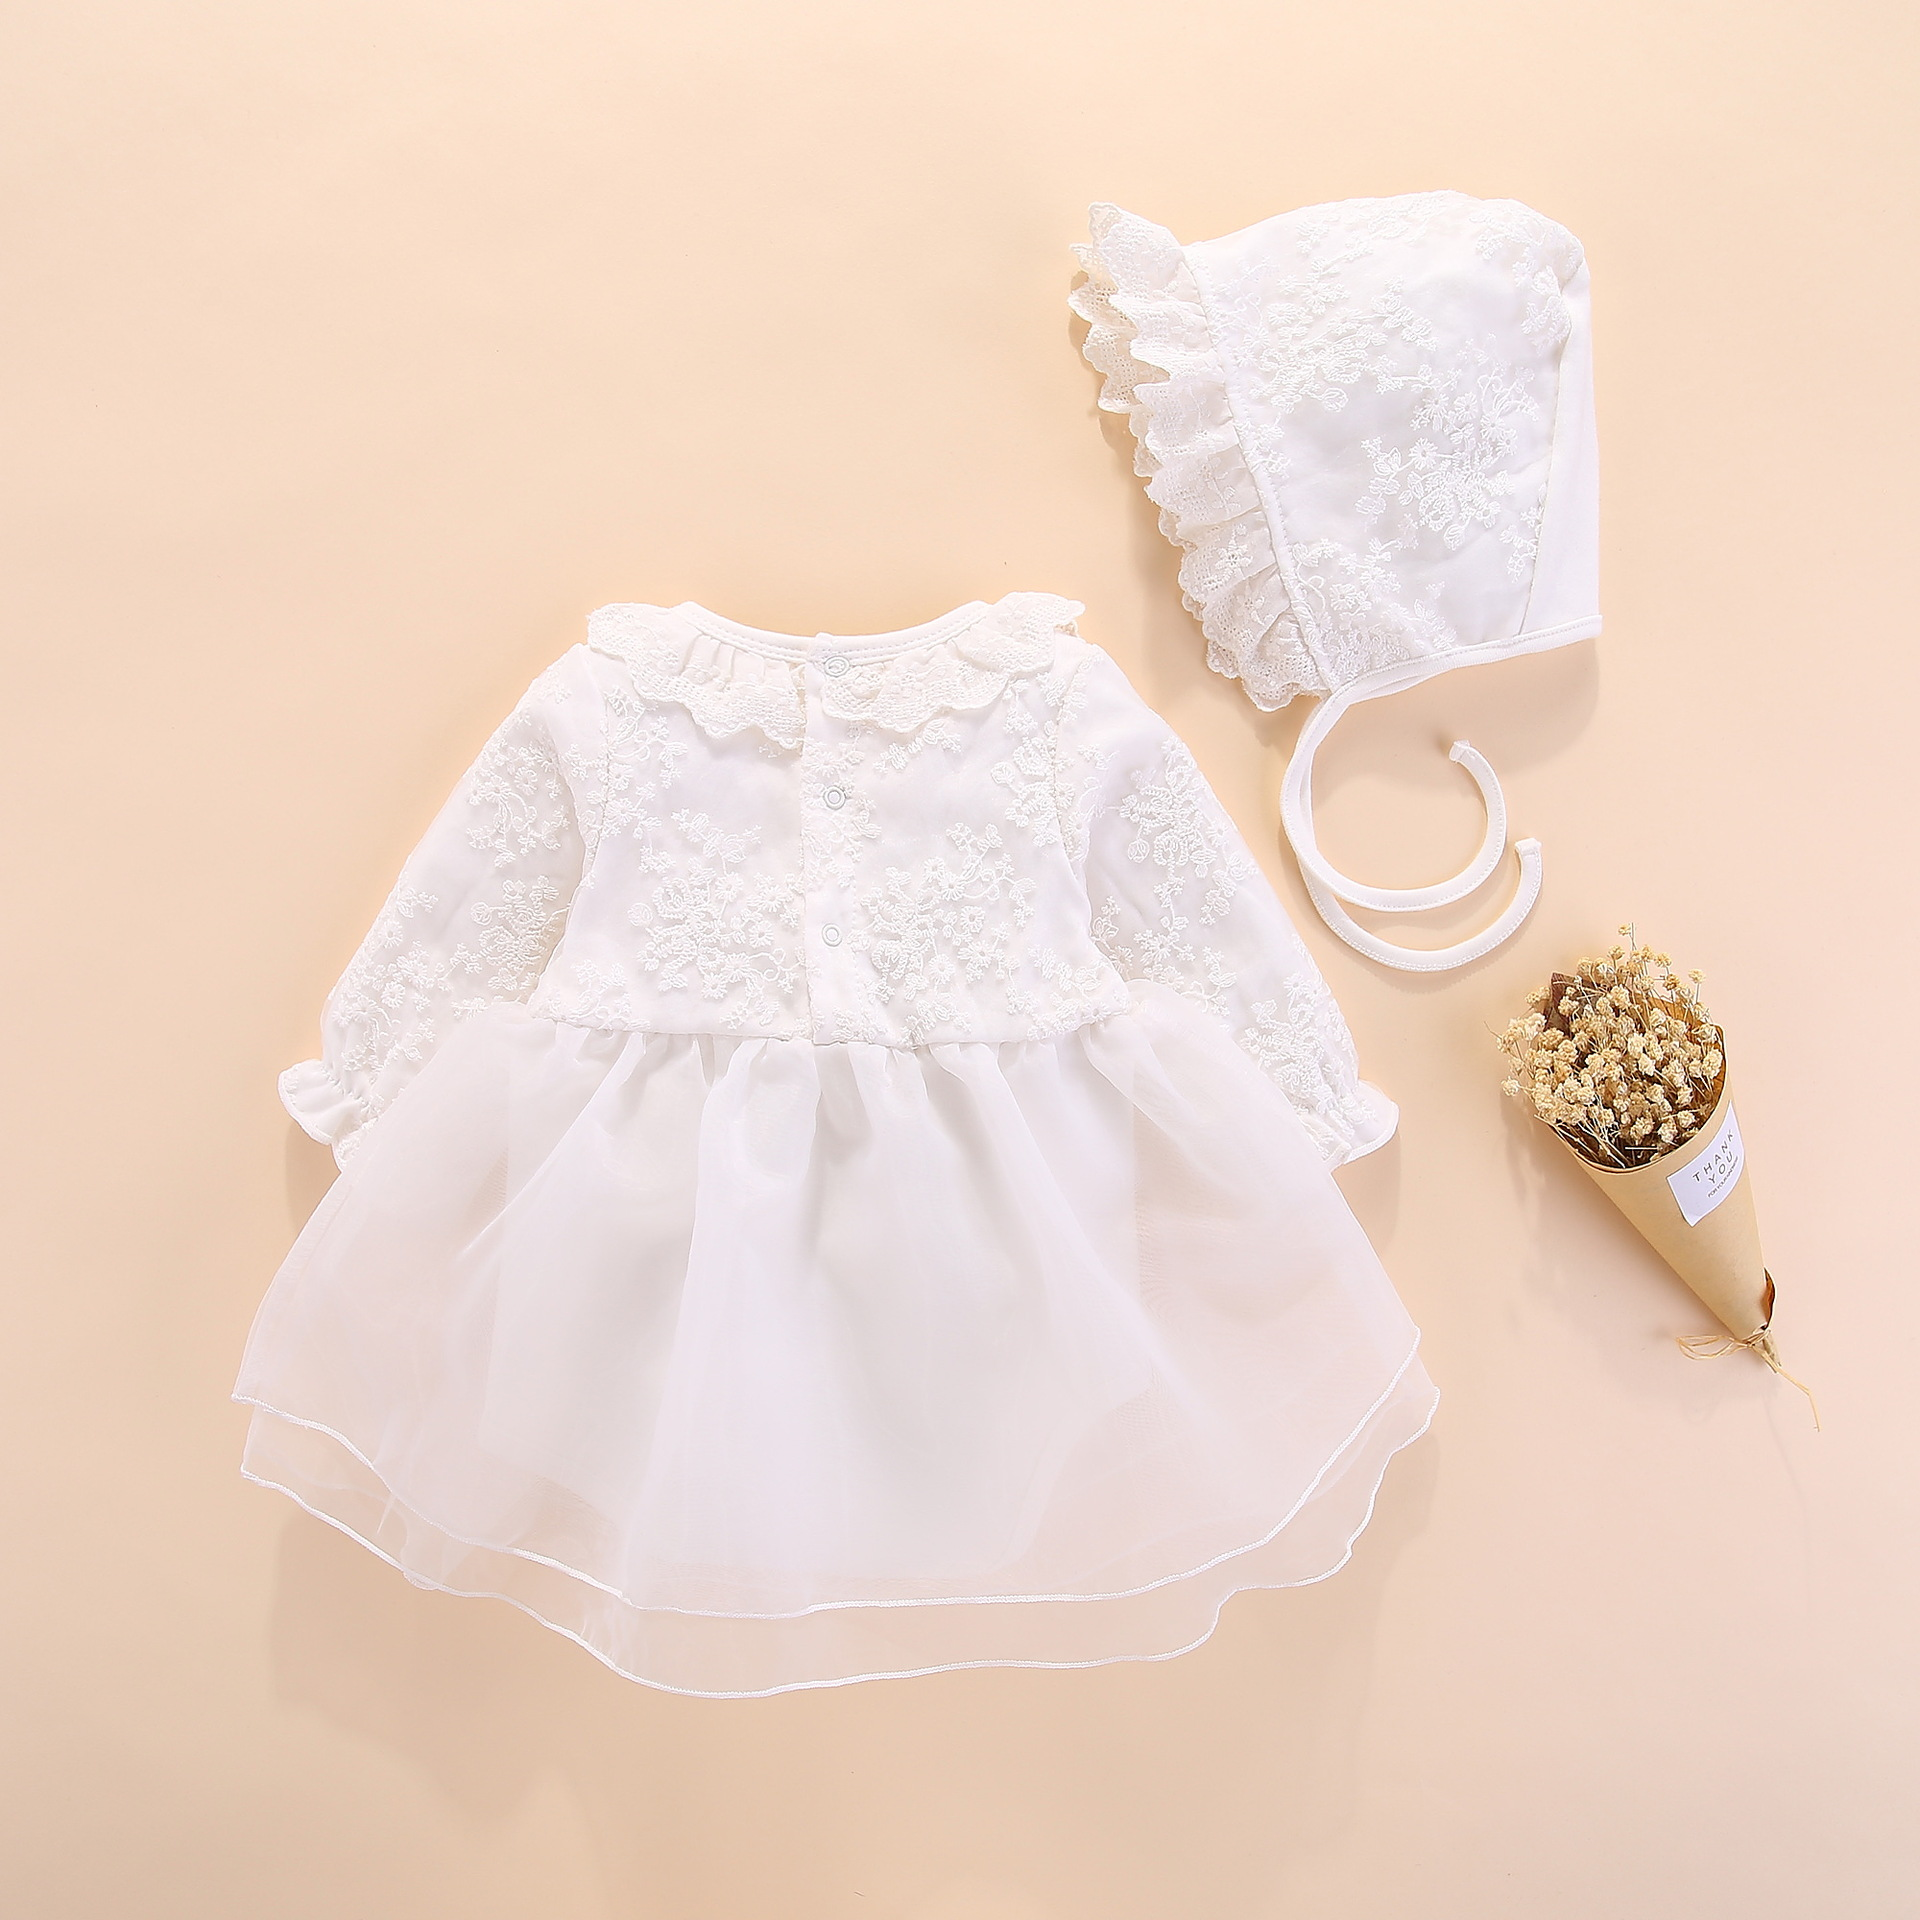 long sleeve baby girls dress princess and wedding baptism kids dresses newborn baby girl clothes pink set with hat lace style